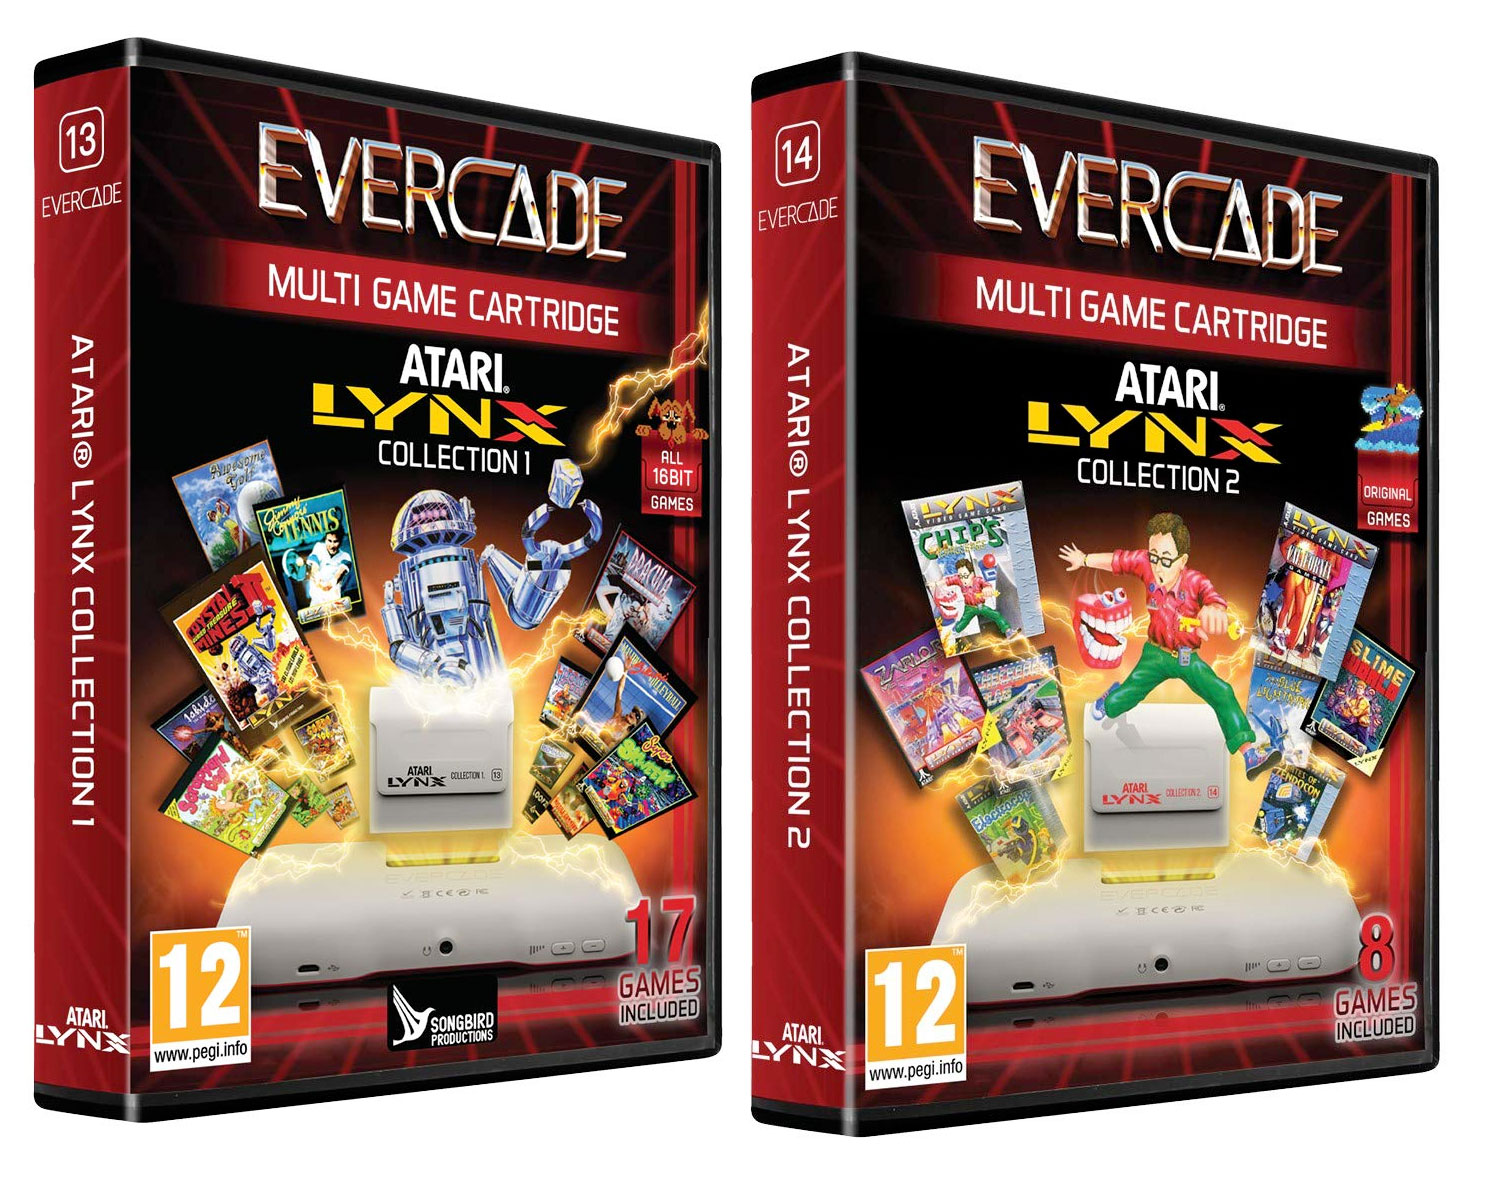 The 2 Atari Lynx games for Evercade